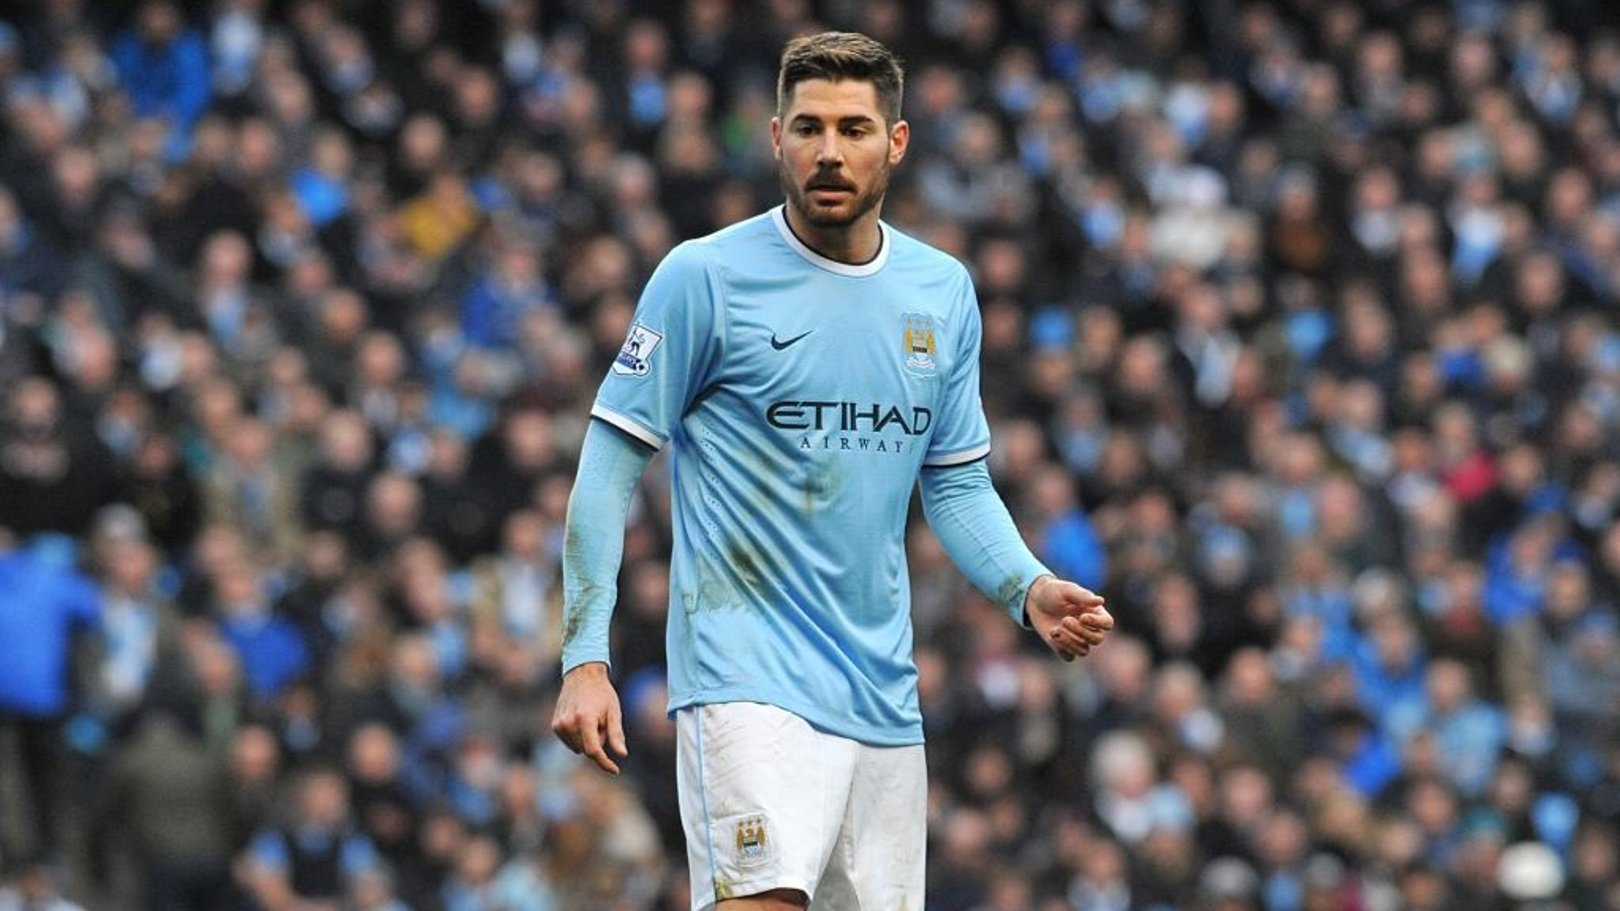 Javi Garcia: Winning the title with City was so special